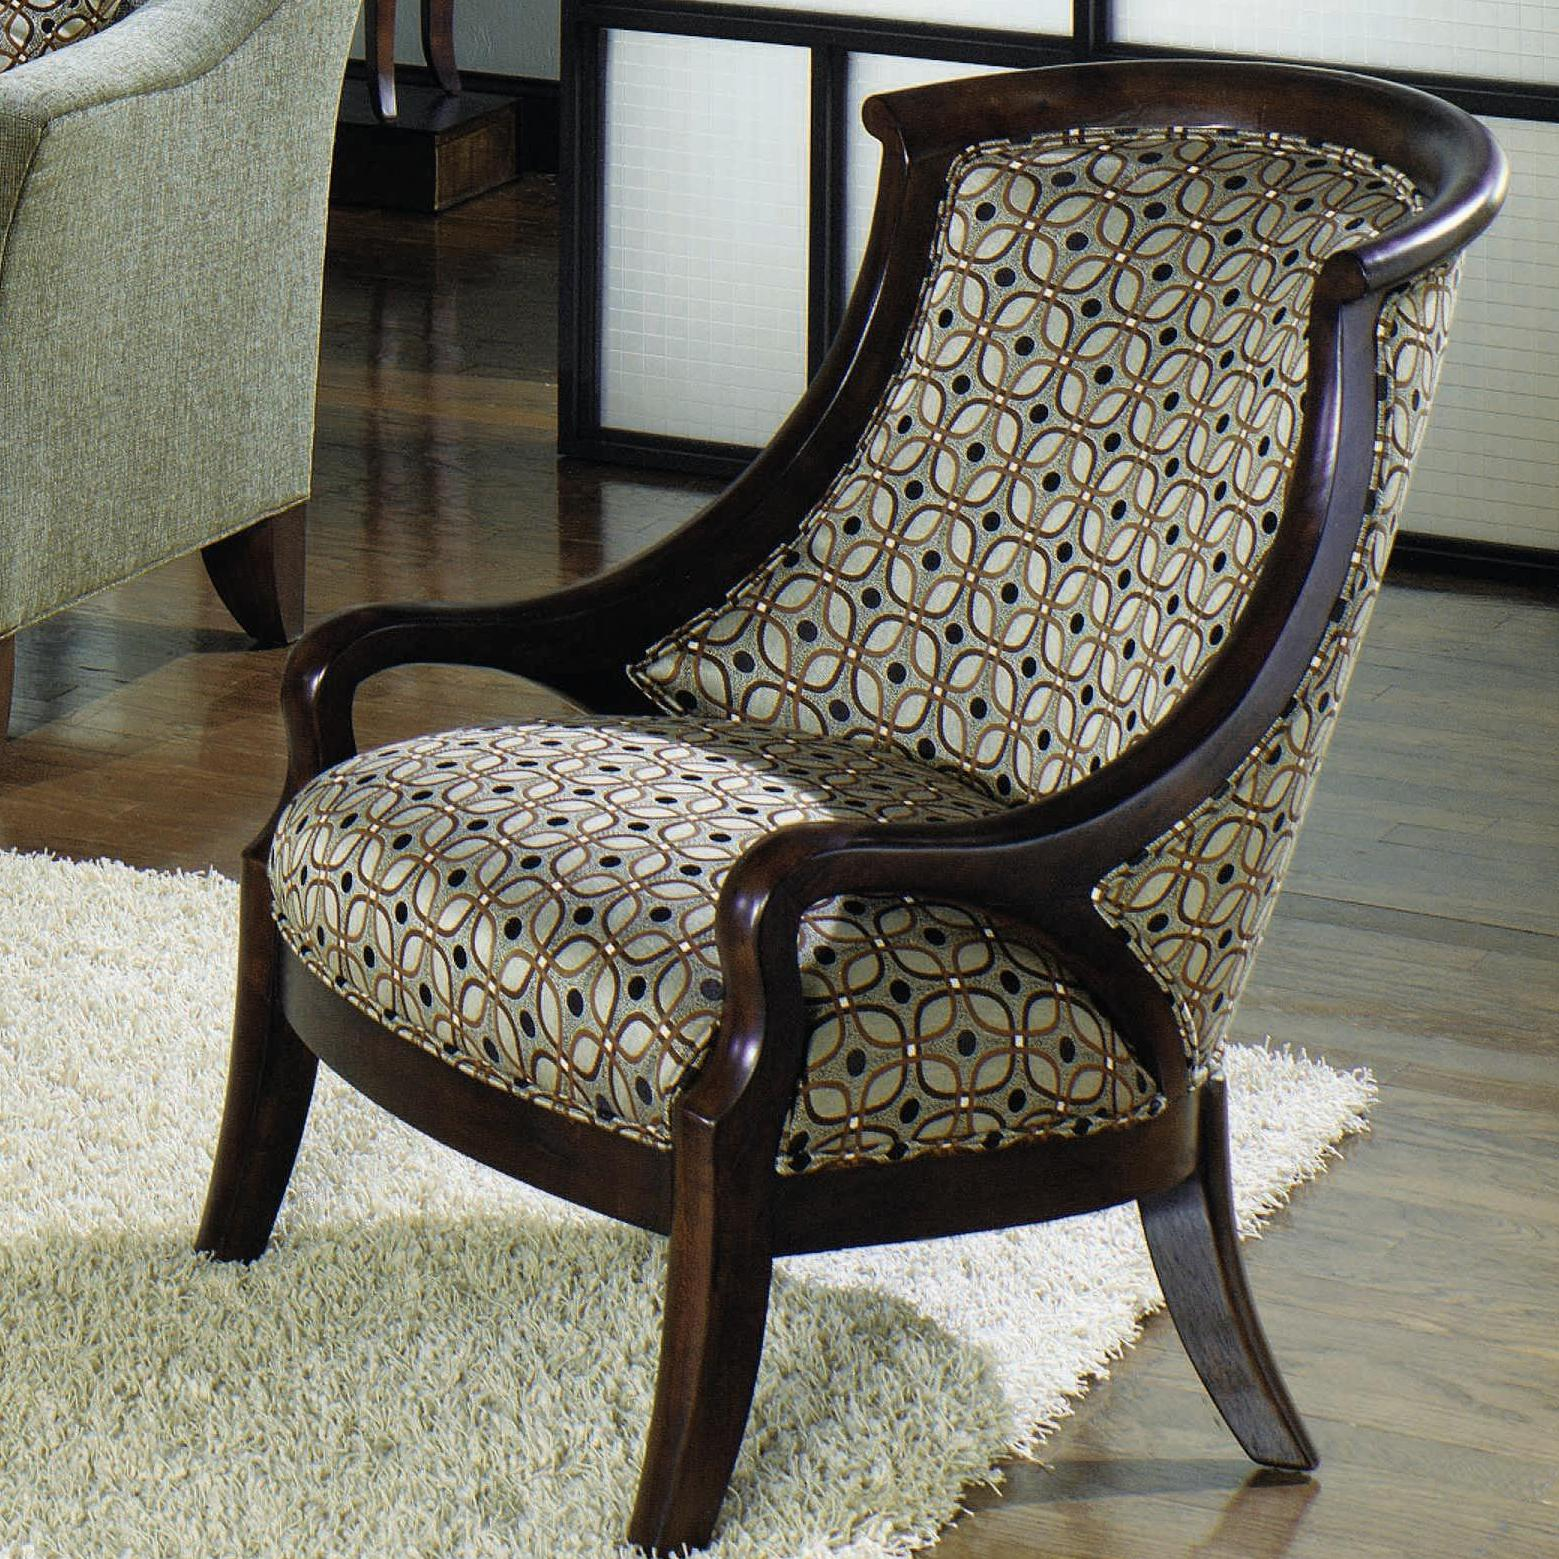 furniture dining room chairs big accent comfy single chair black and cream patterned living navy occasional table with full size pier wicker patio garage door threshold cordless